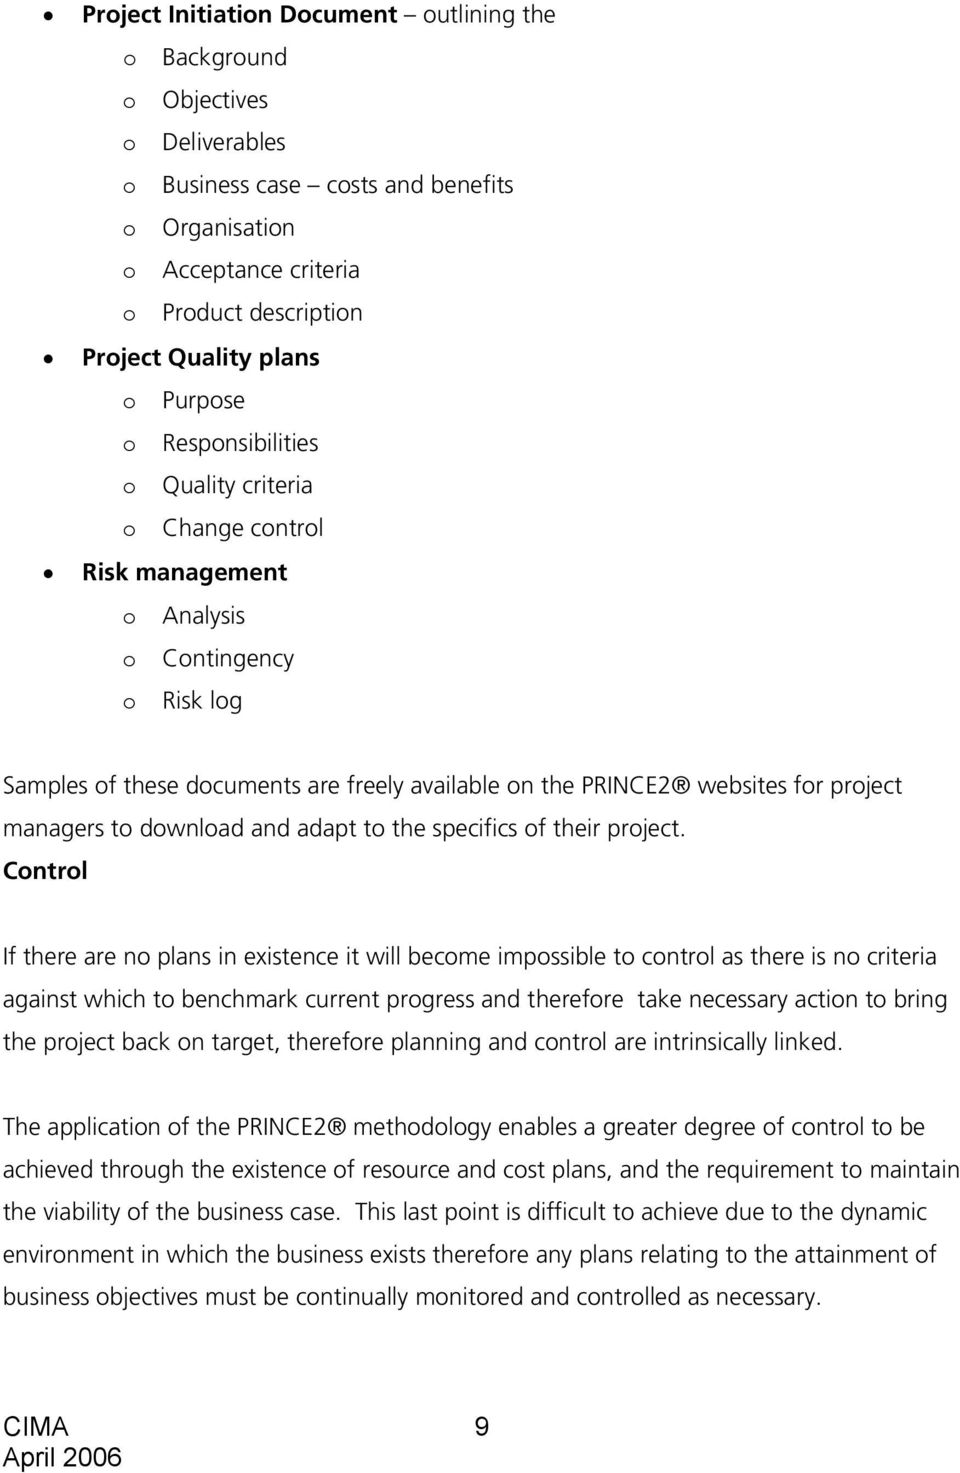 An Introduction to the PRINCE2 project methodology by Ruth Court ...